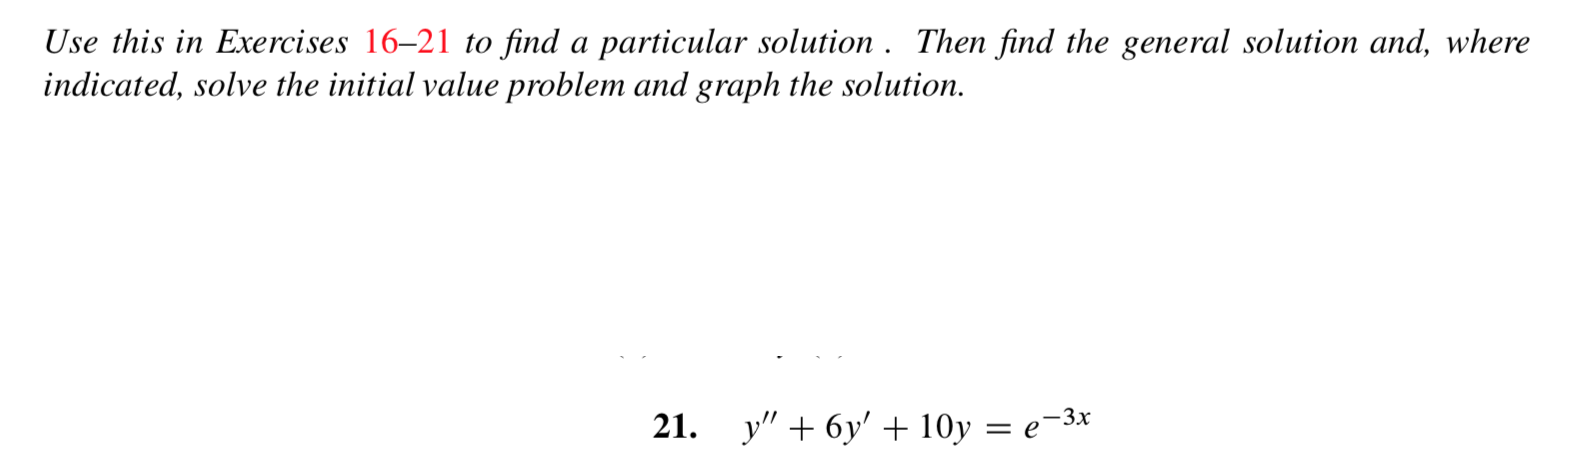 """Use this in Exercises 16-21 to find a particular solution . Then find the general solution and, where indicated, solve the initial value problem and graph the solution у"""" + 6у + 10у — е-3х 21."""